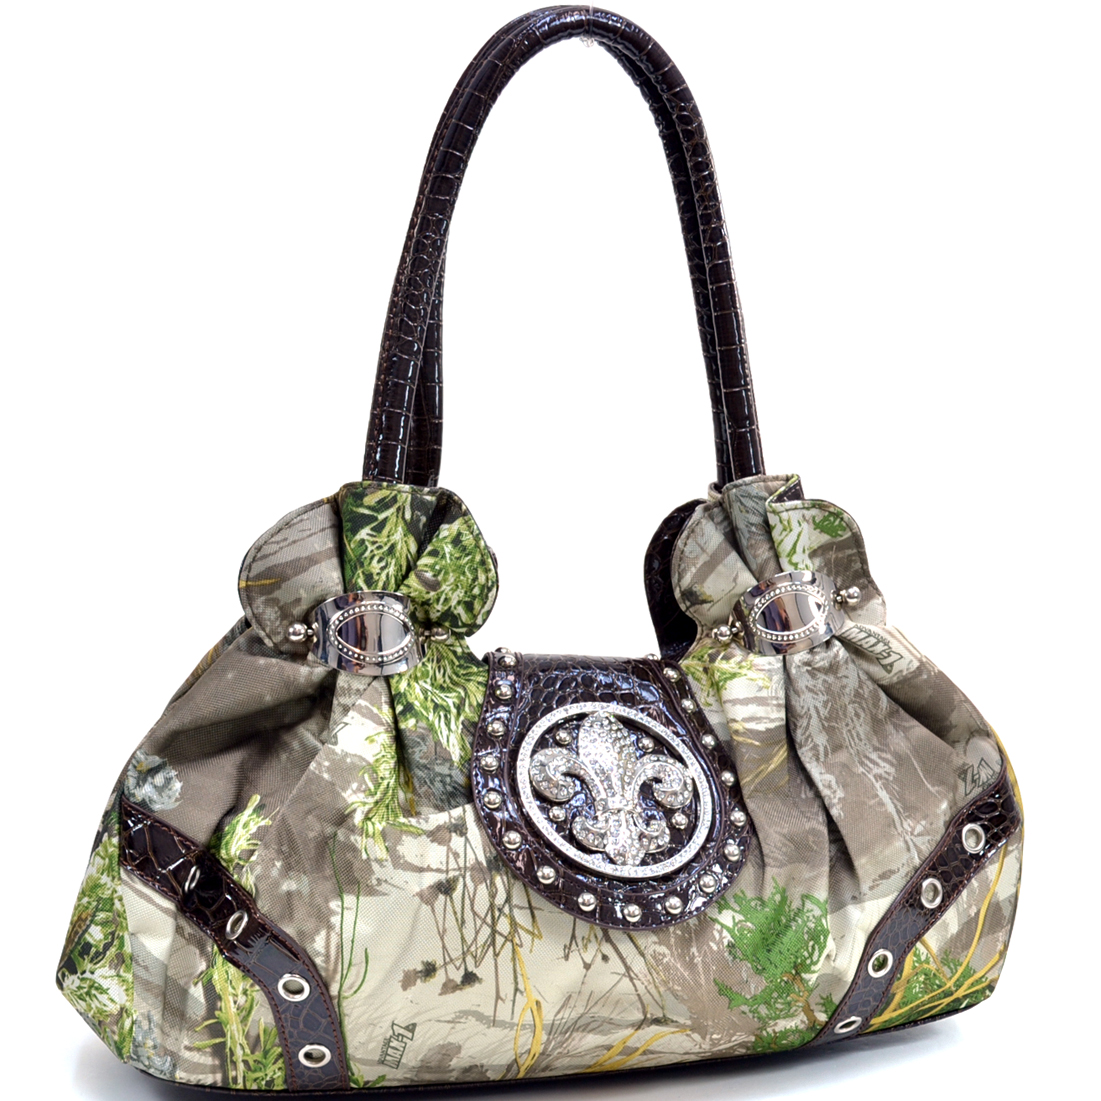 Dasein® Studded Satchel Bag in Realtree ® Camouflage with Rhinestone Fleur De Lis ornament